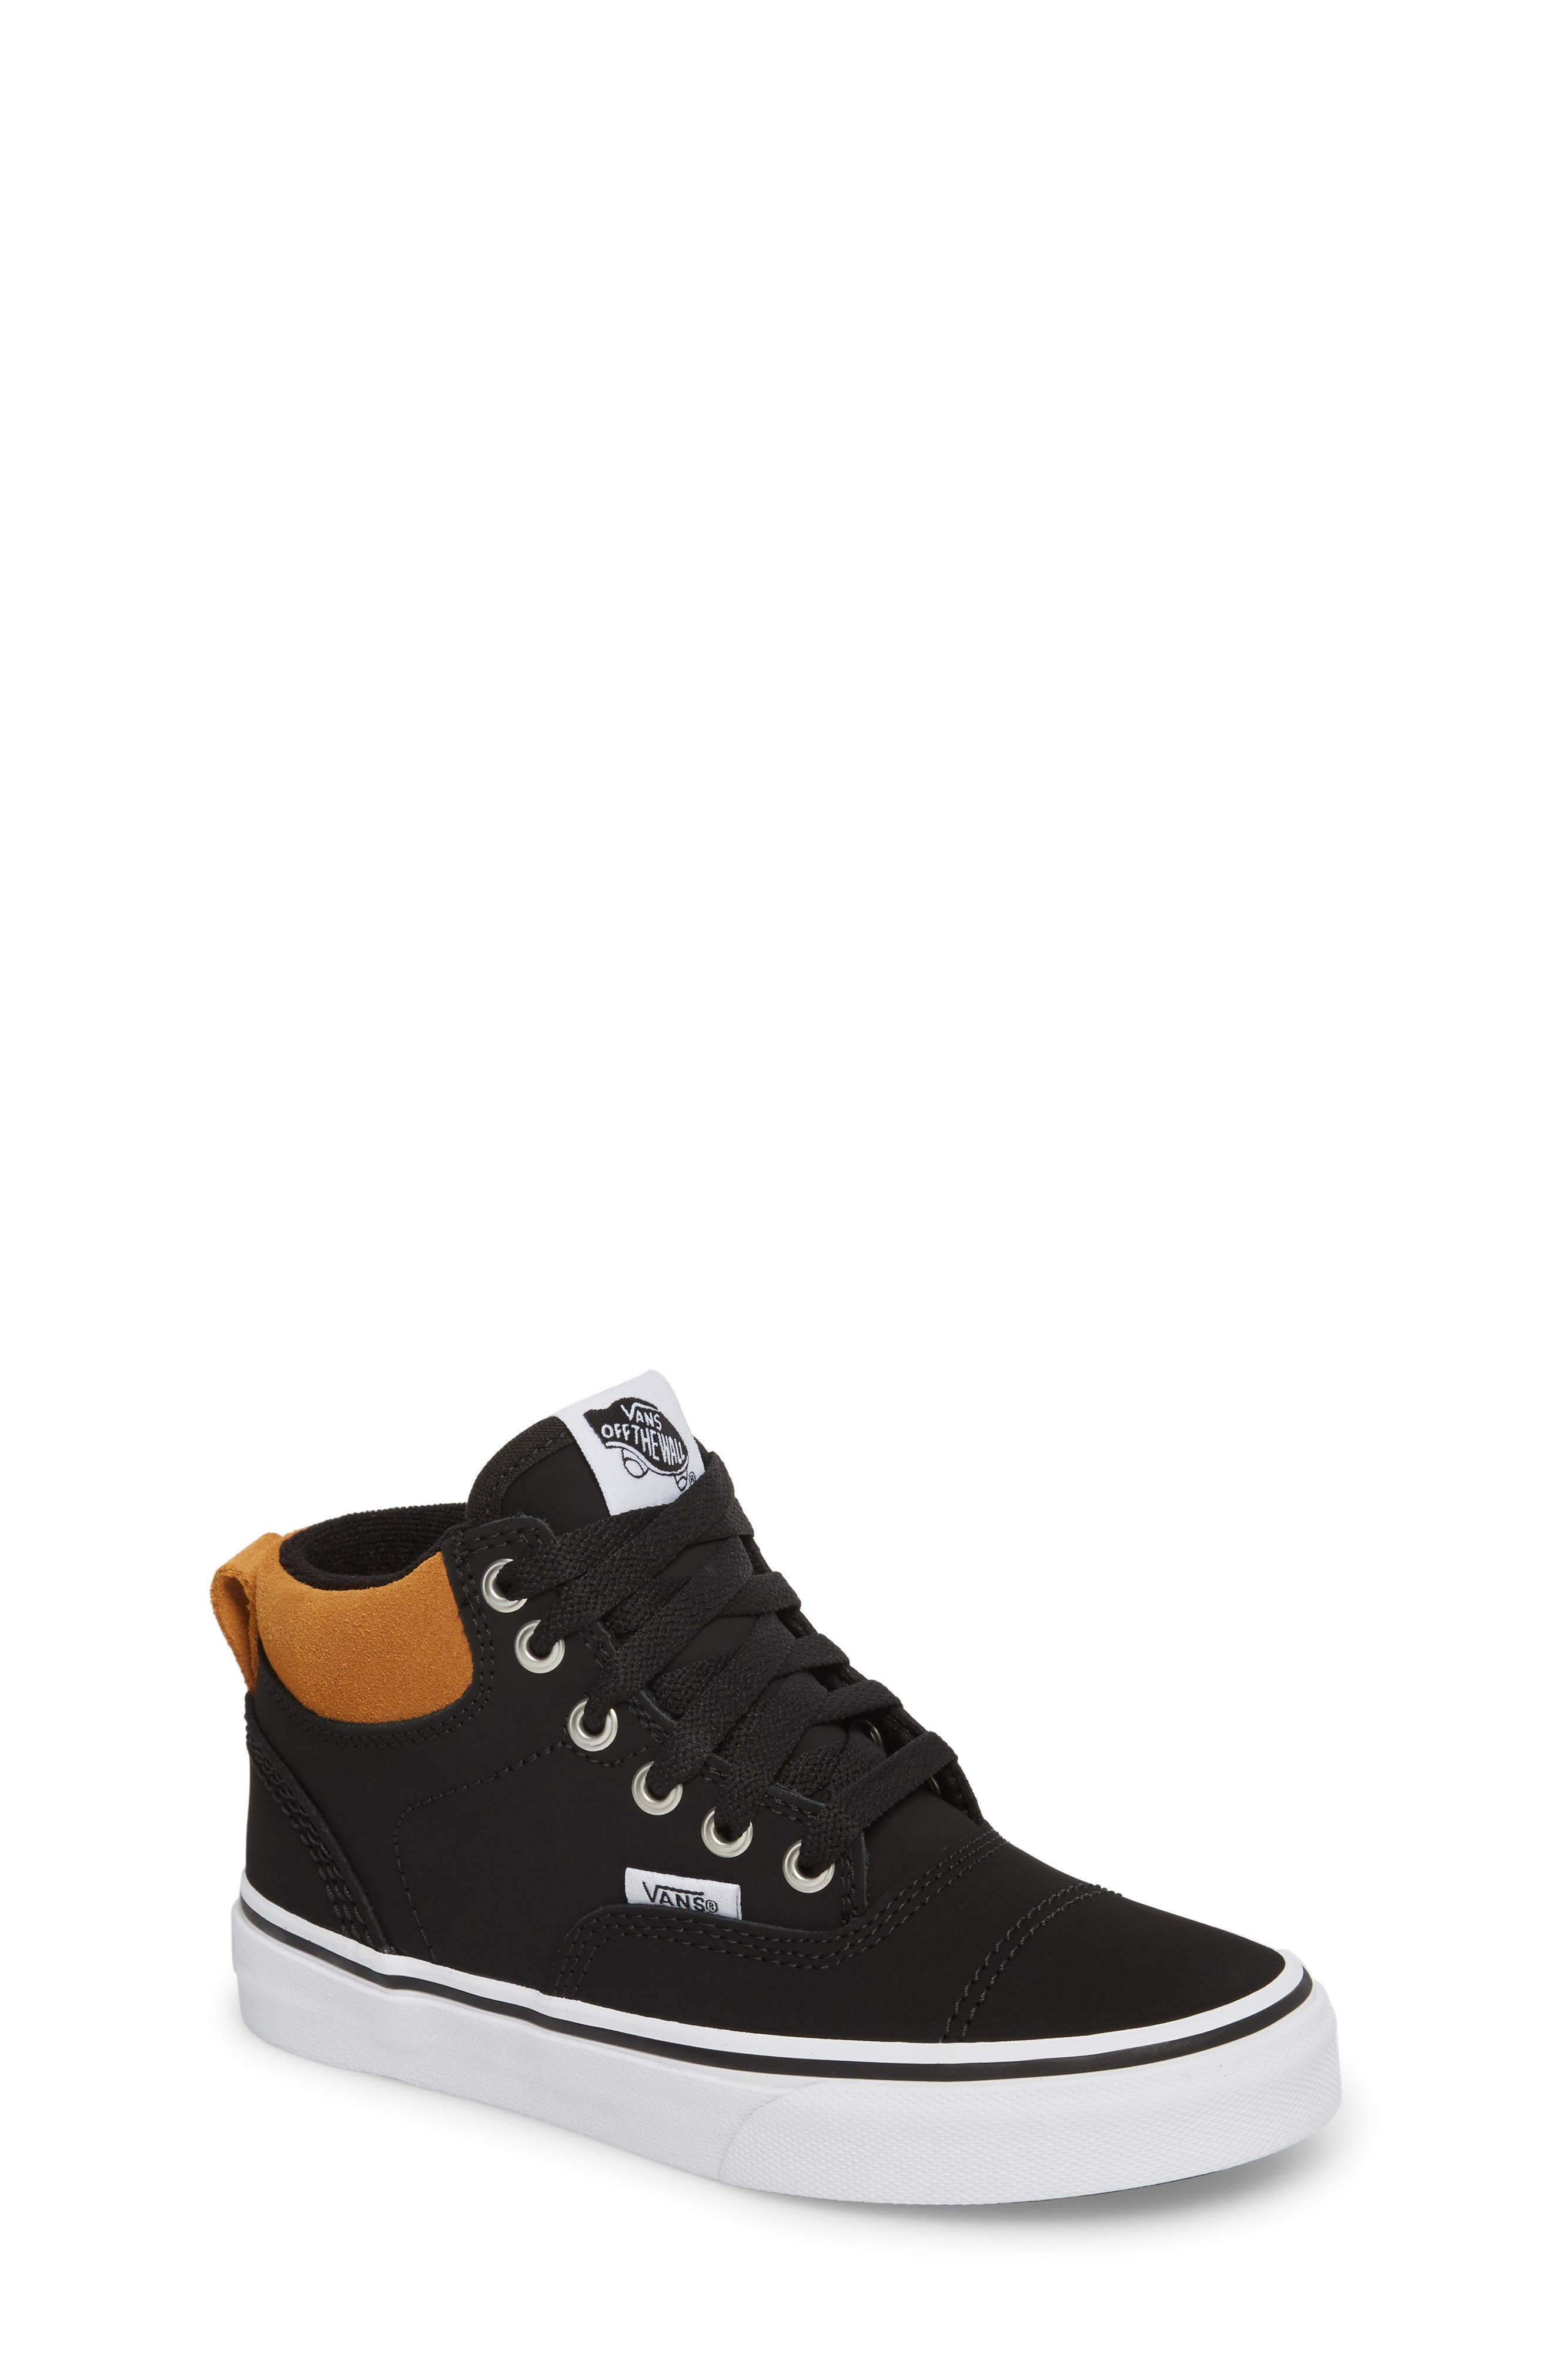 Era - Hi Sneaker,                         Main,                         color,